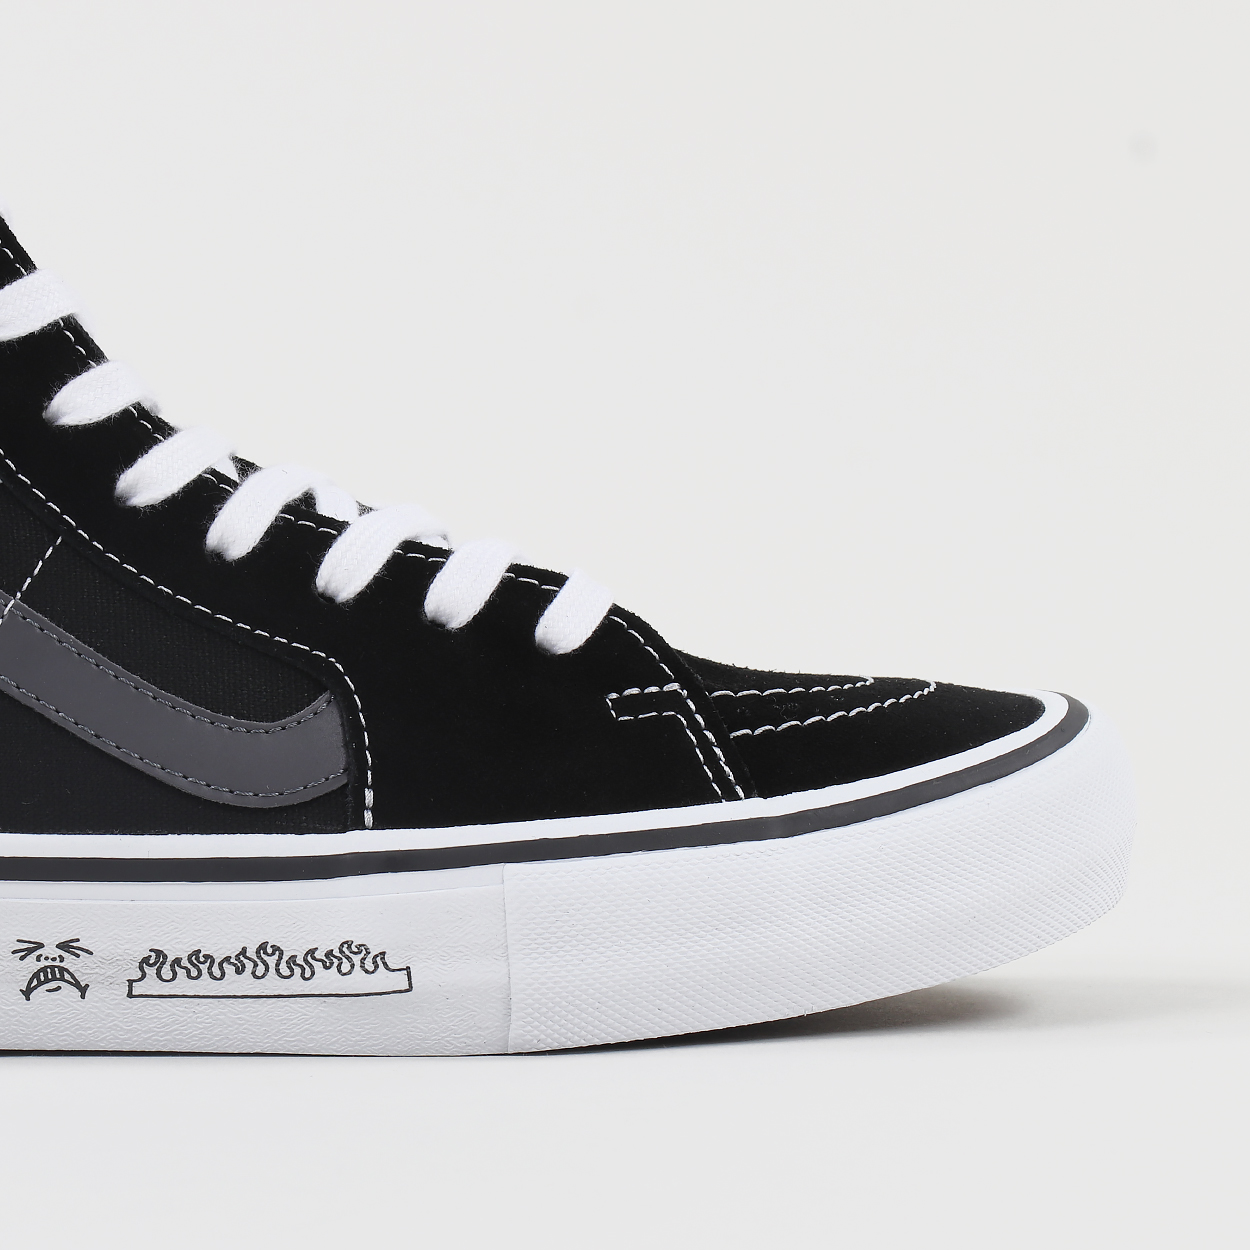 c3092324bfa131 A pair of Sk8-Hi Pro shoes from Vans  collaboration with BMX company Cult.  The shoes are made from suede